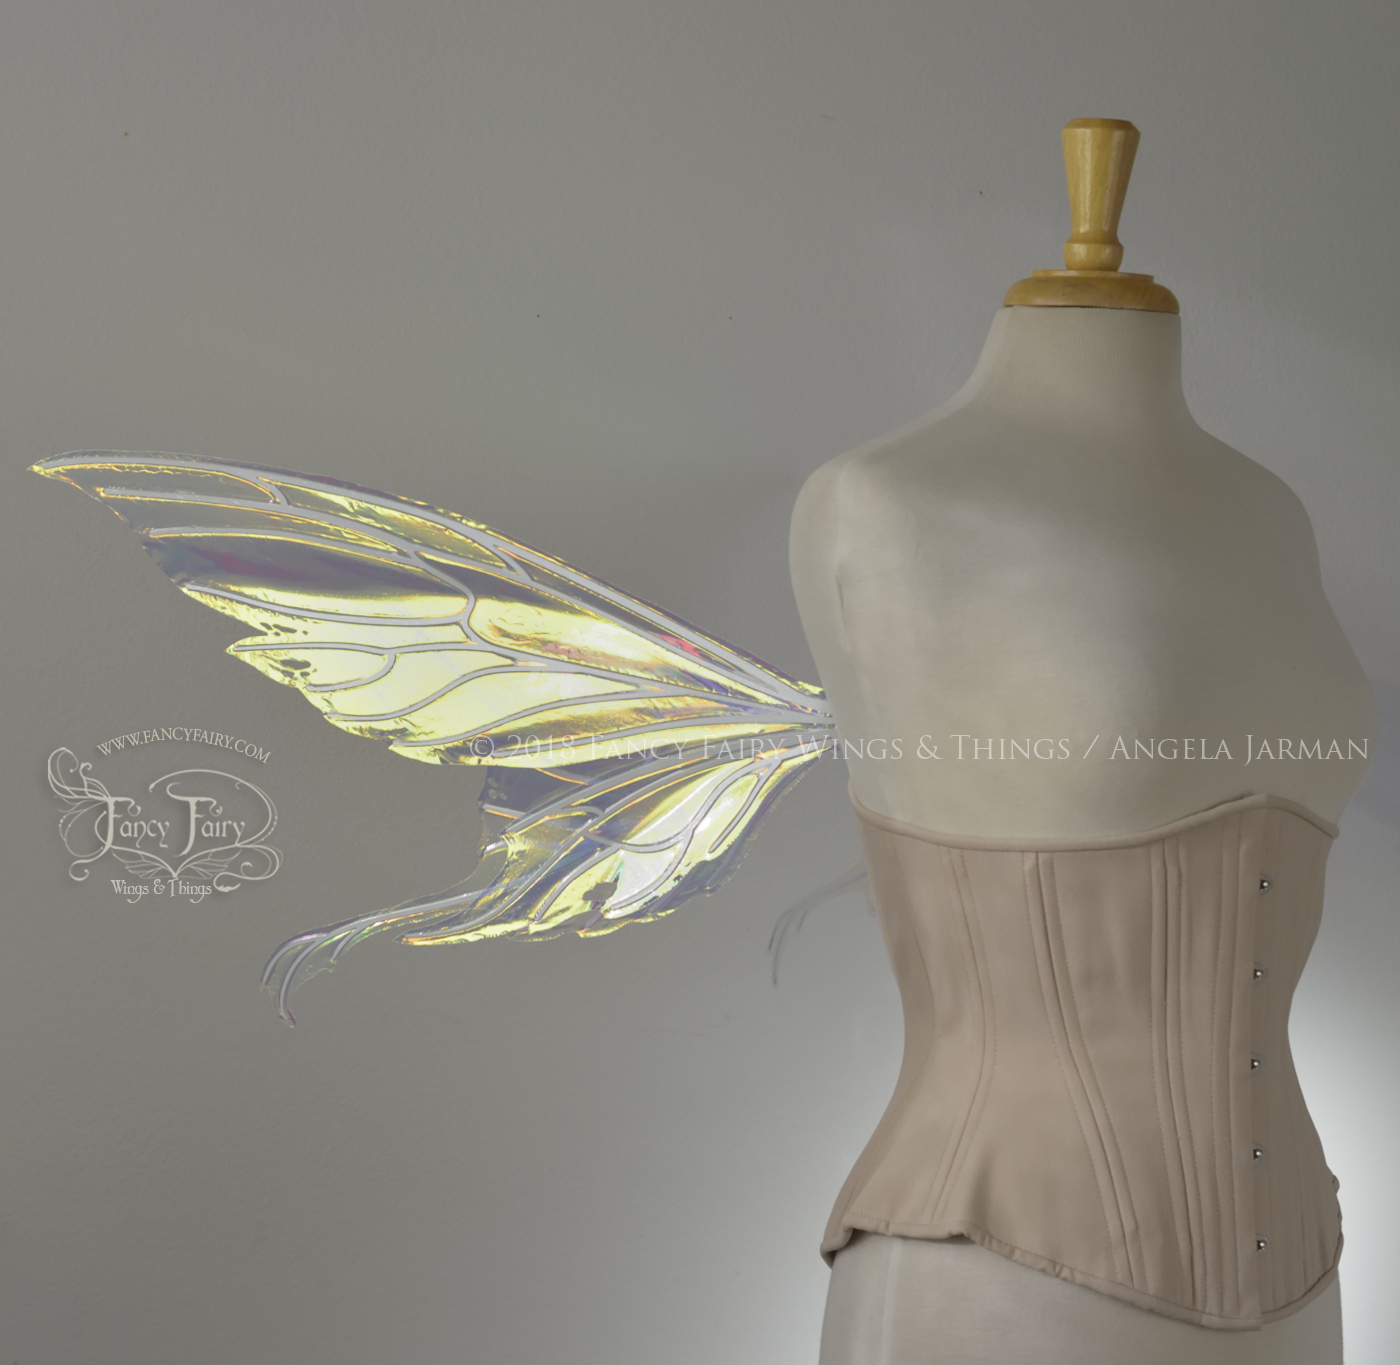 Aynia / Morgana Lowers Fairy Wings